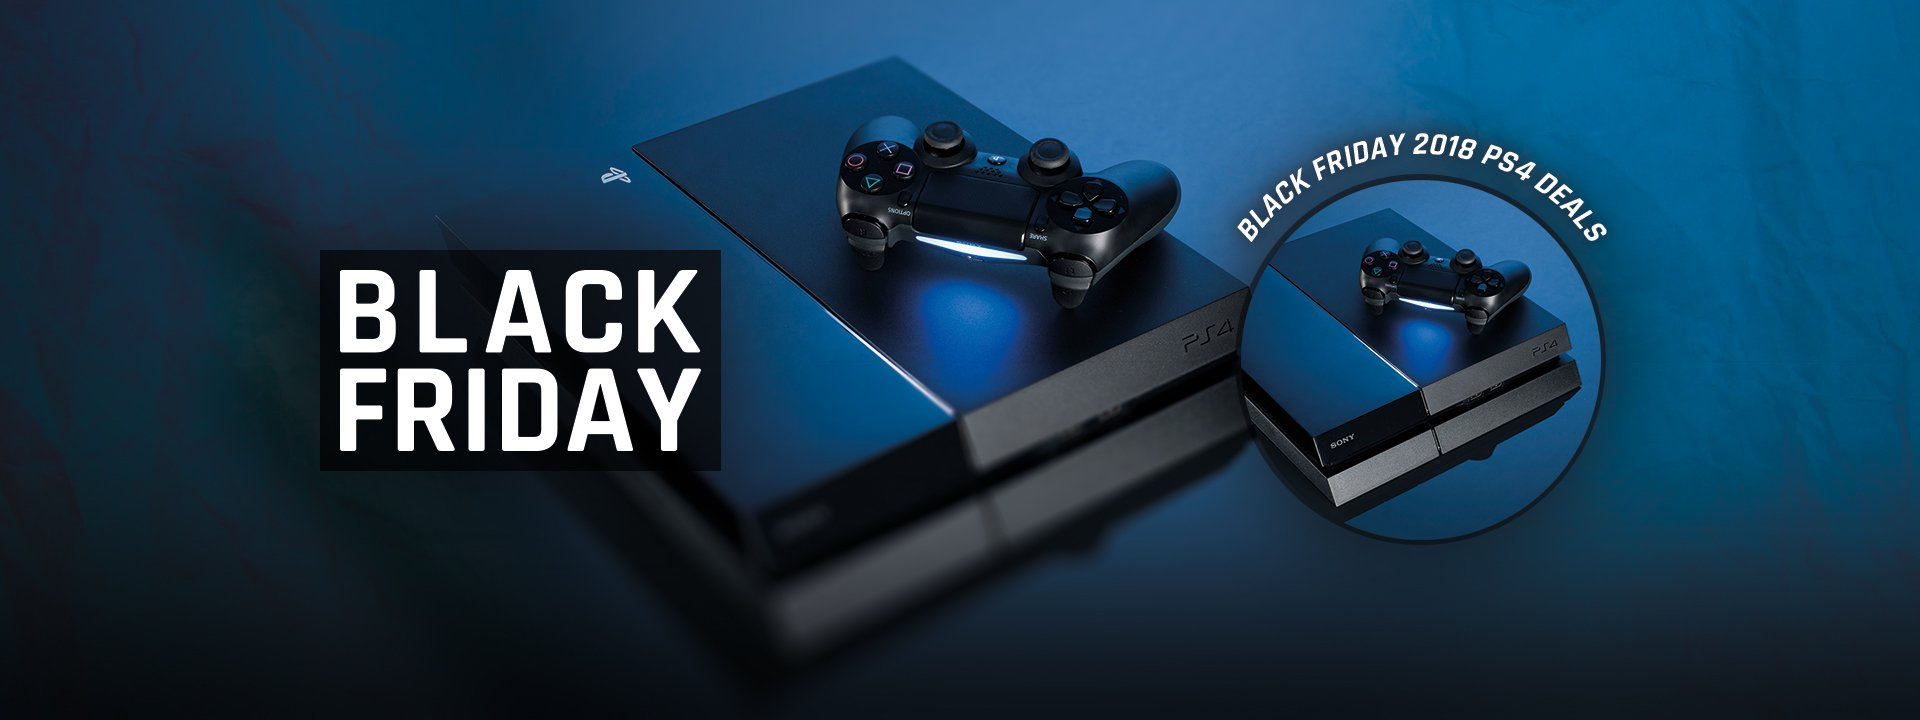 What will the best PS4 Black Friday deals be this year?